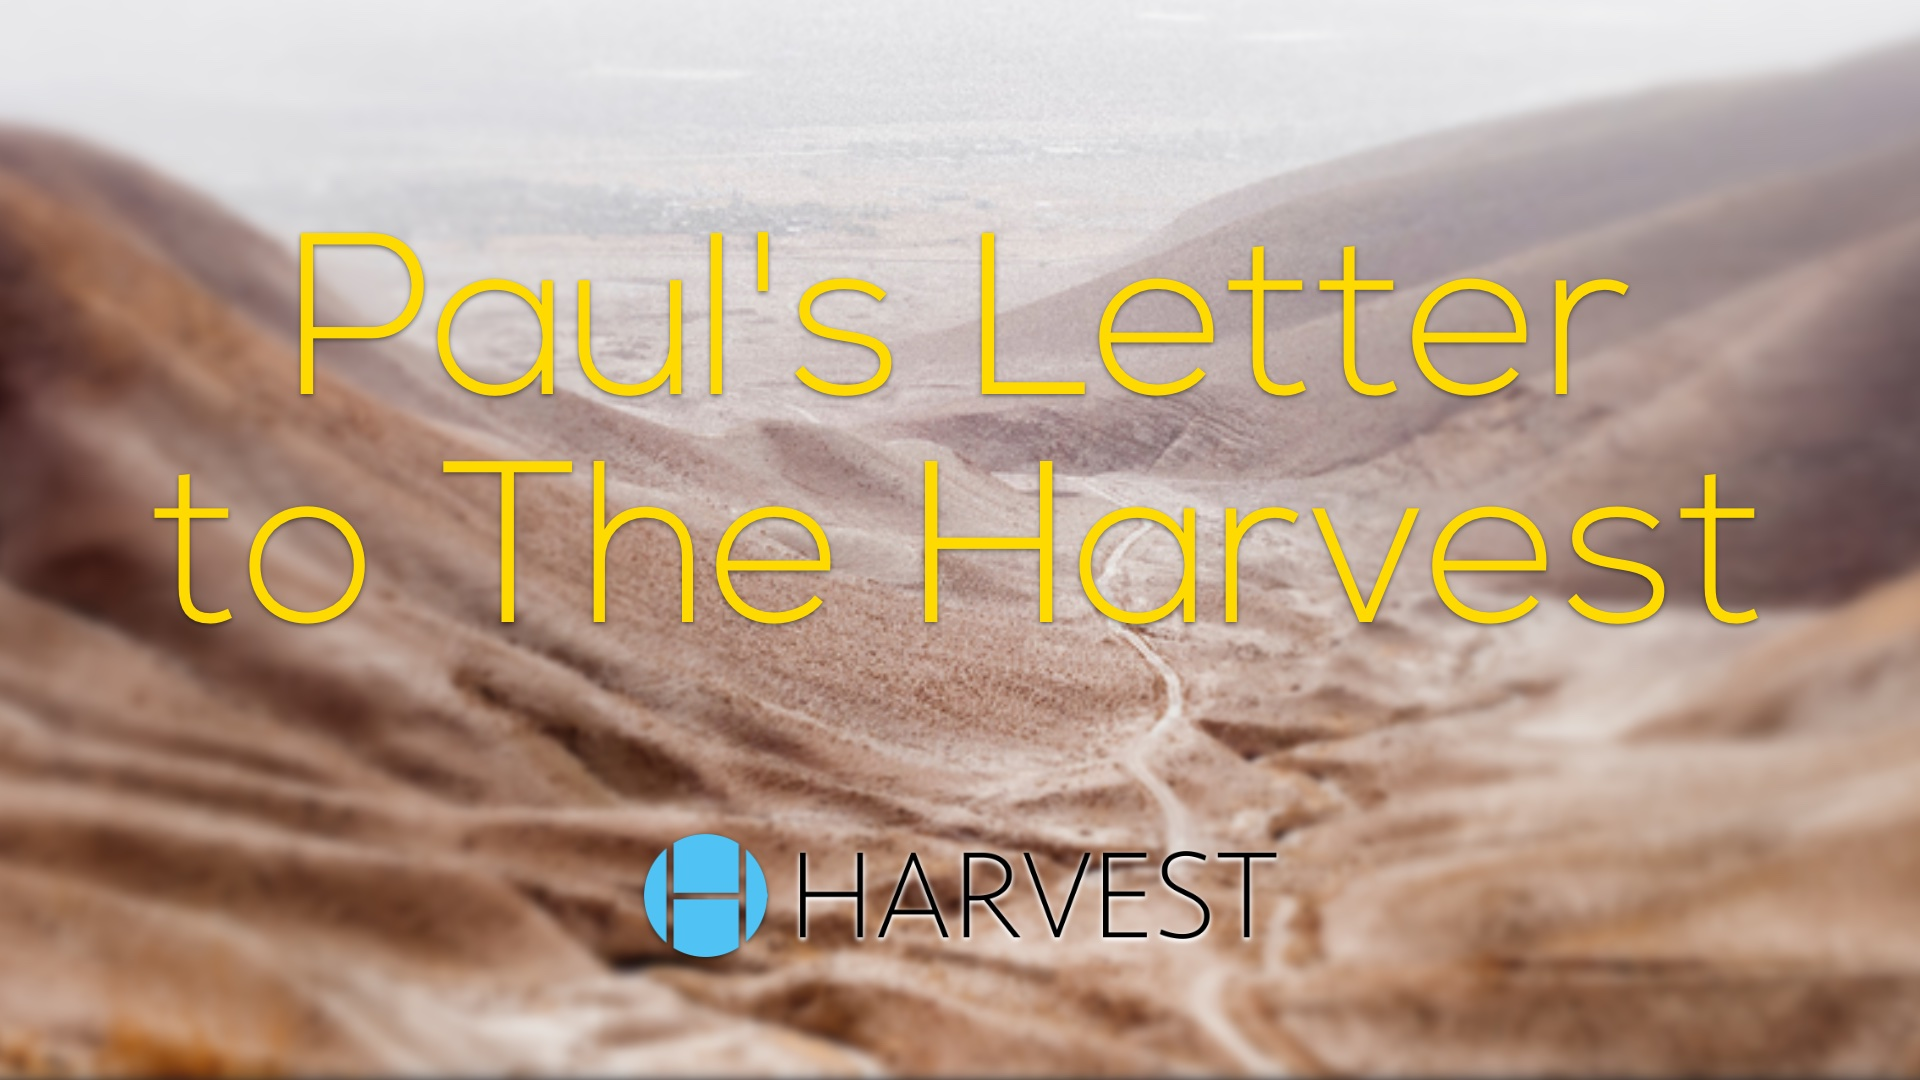 The Apostle Paul's Instructions to Harvest